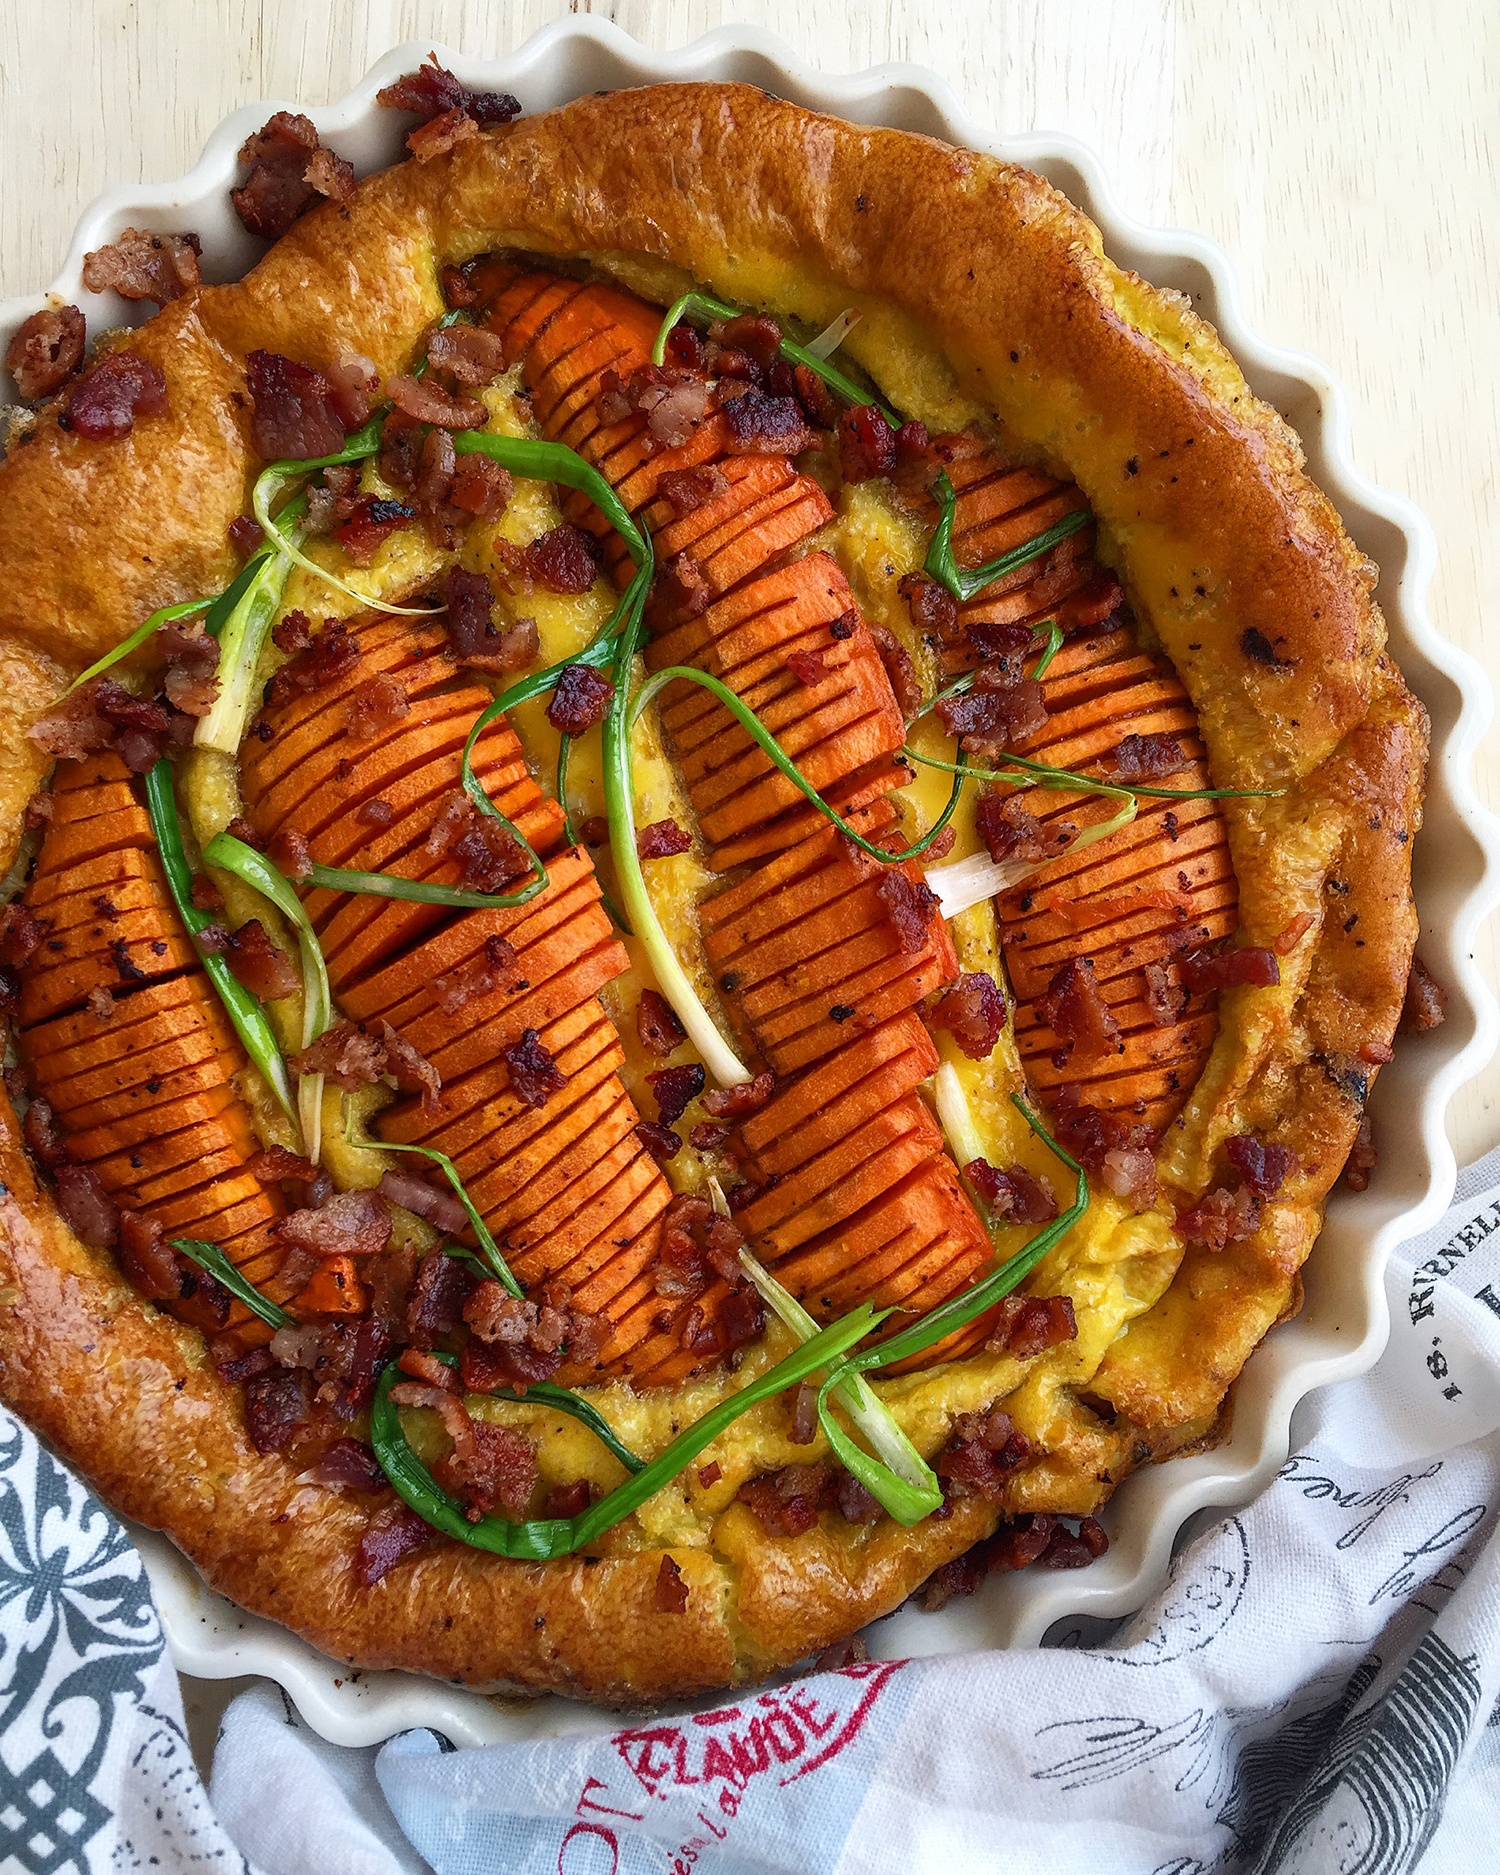 This sweet potato frittata creation rose from the ashes of a recipe ...